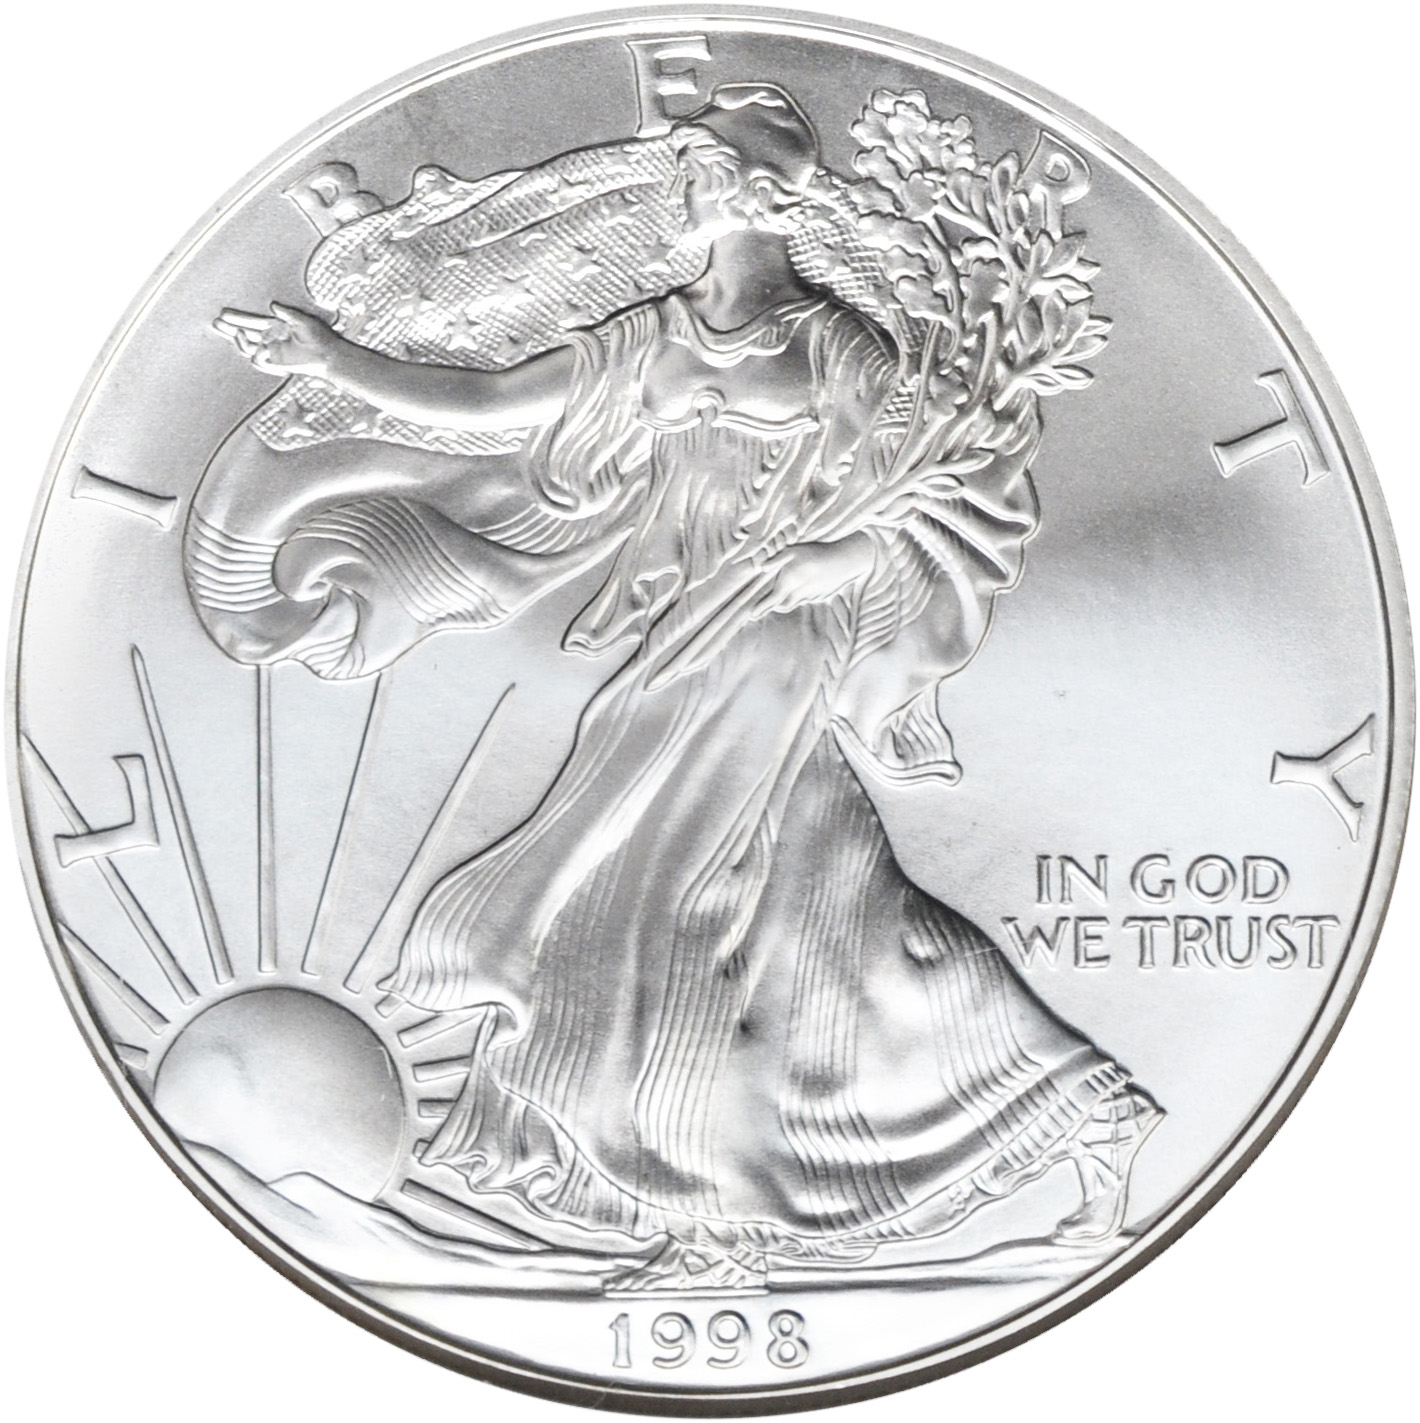 Value Of 1998 American Silver Eagle 1 Coin